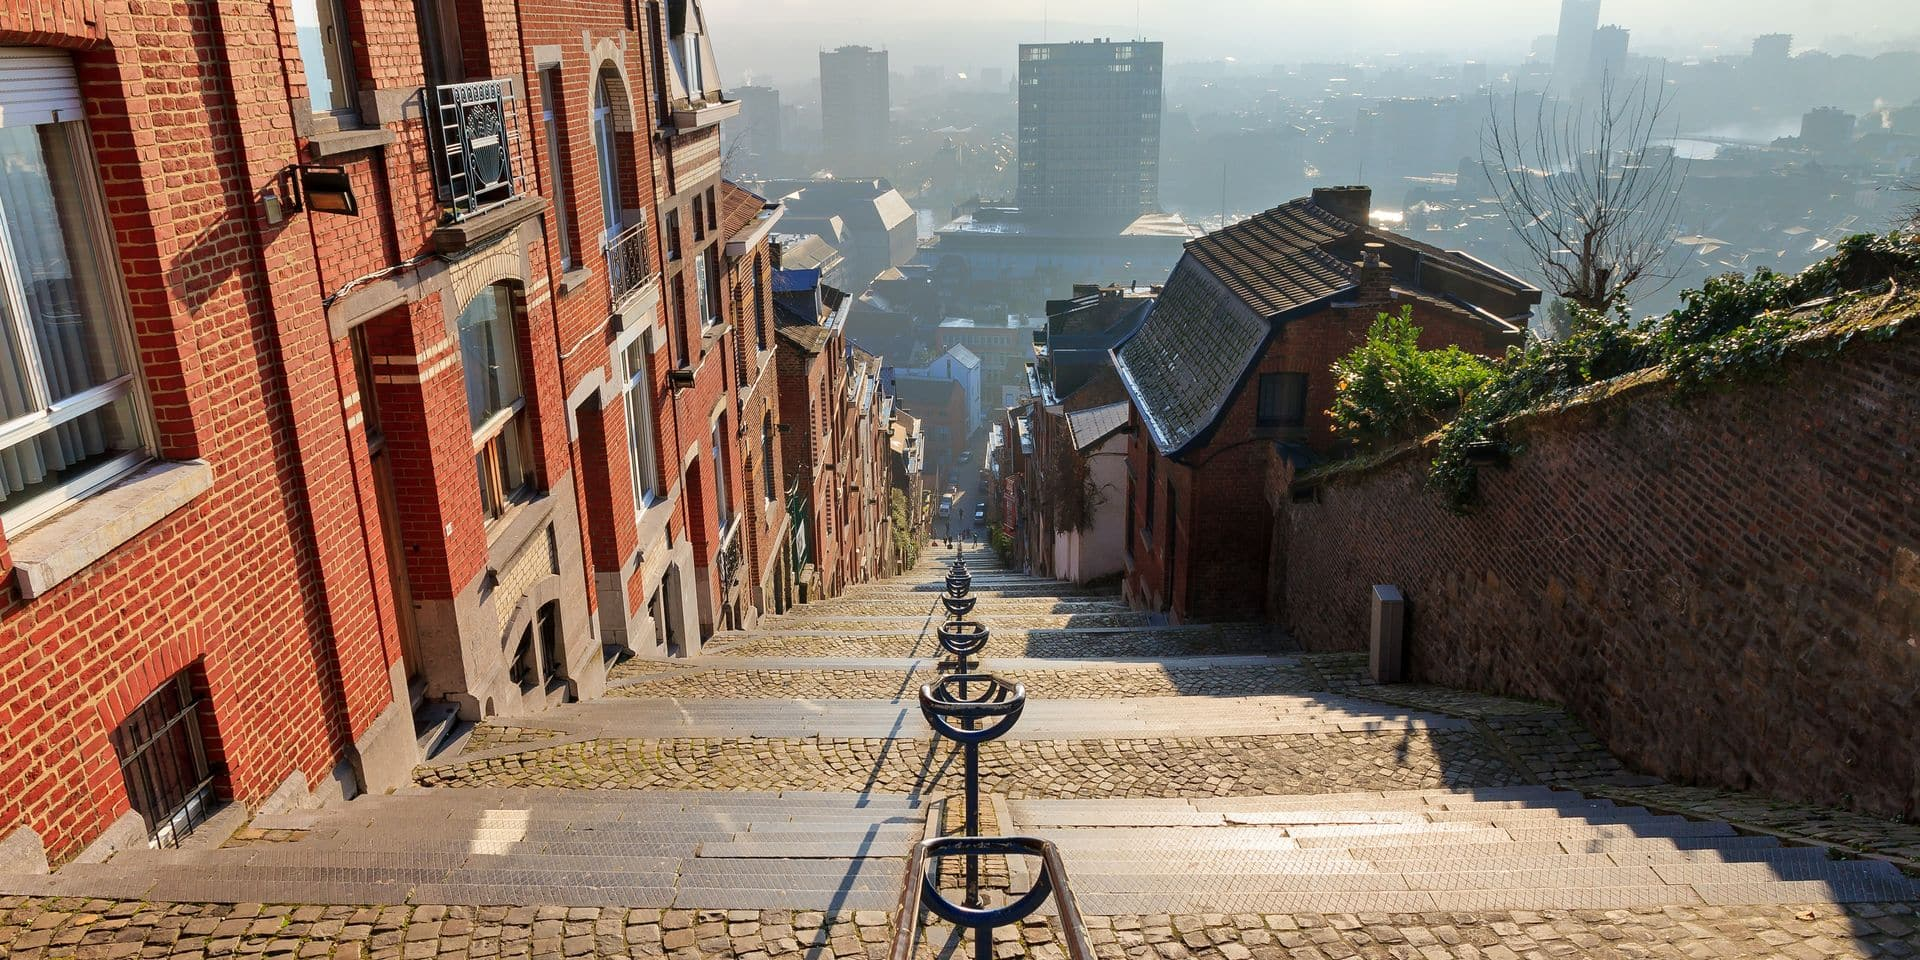 374-step,Long,Staircase,Montagne,De,Bueren,,A,Popular,Landmark,And